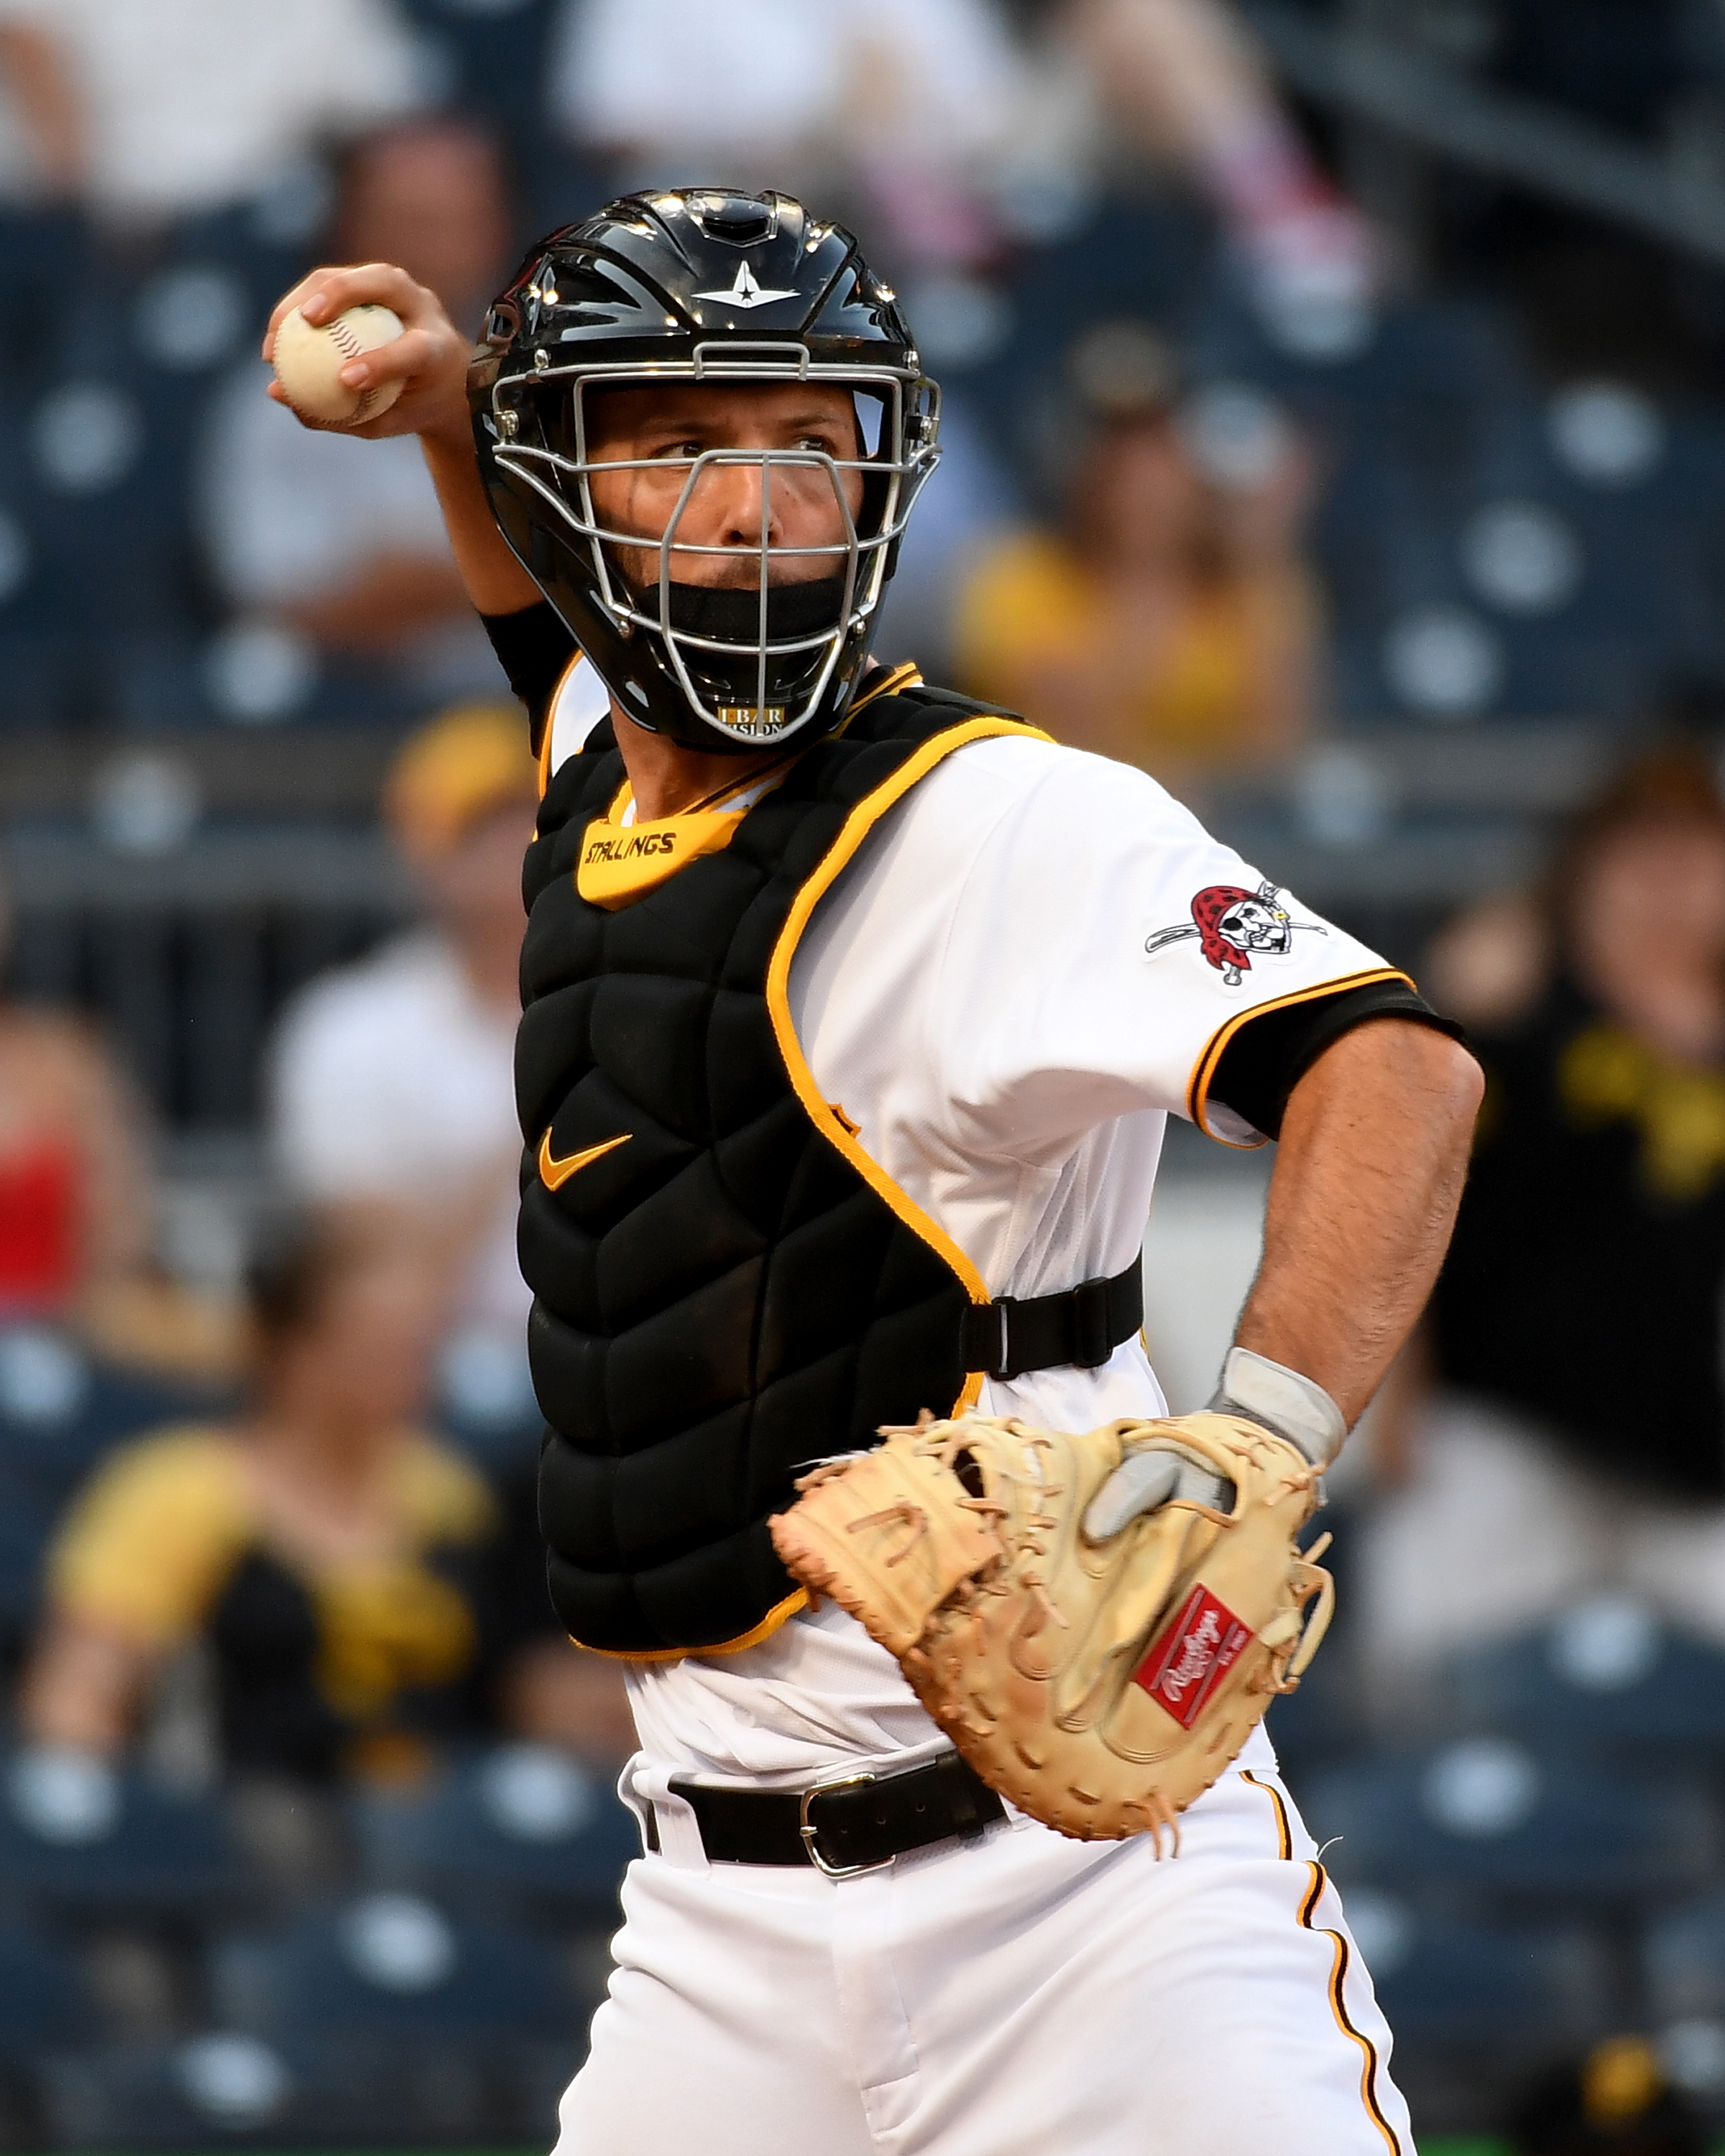 Jacob Stallings #58 of the Pittsburgh Pirates in action during the game against the Miami Marlins at PNC Park